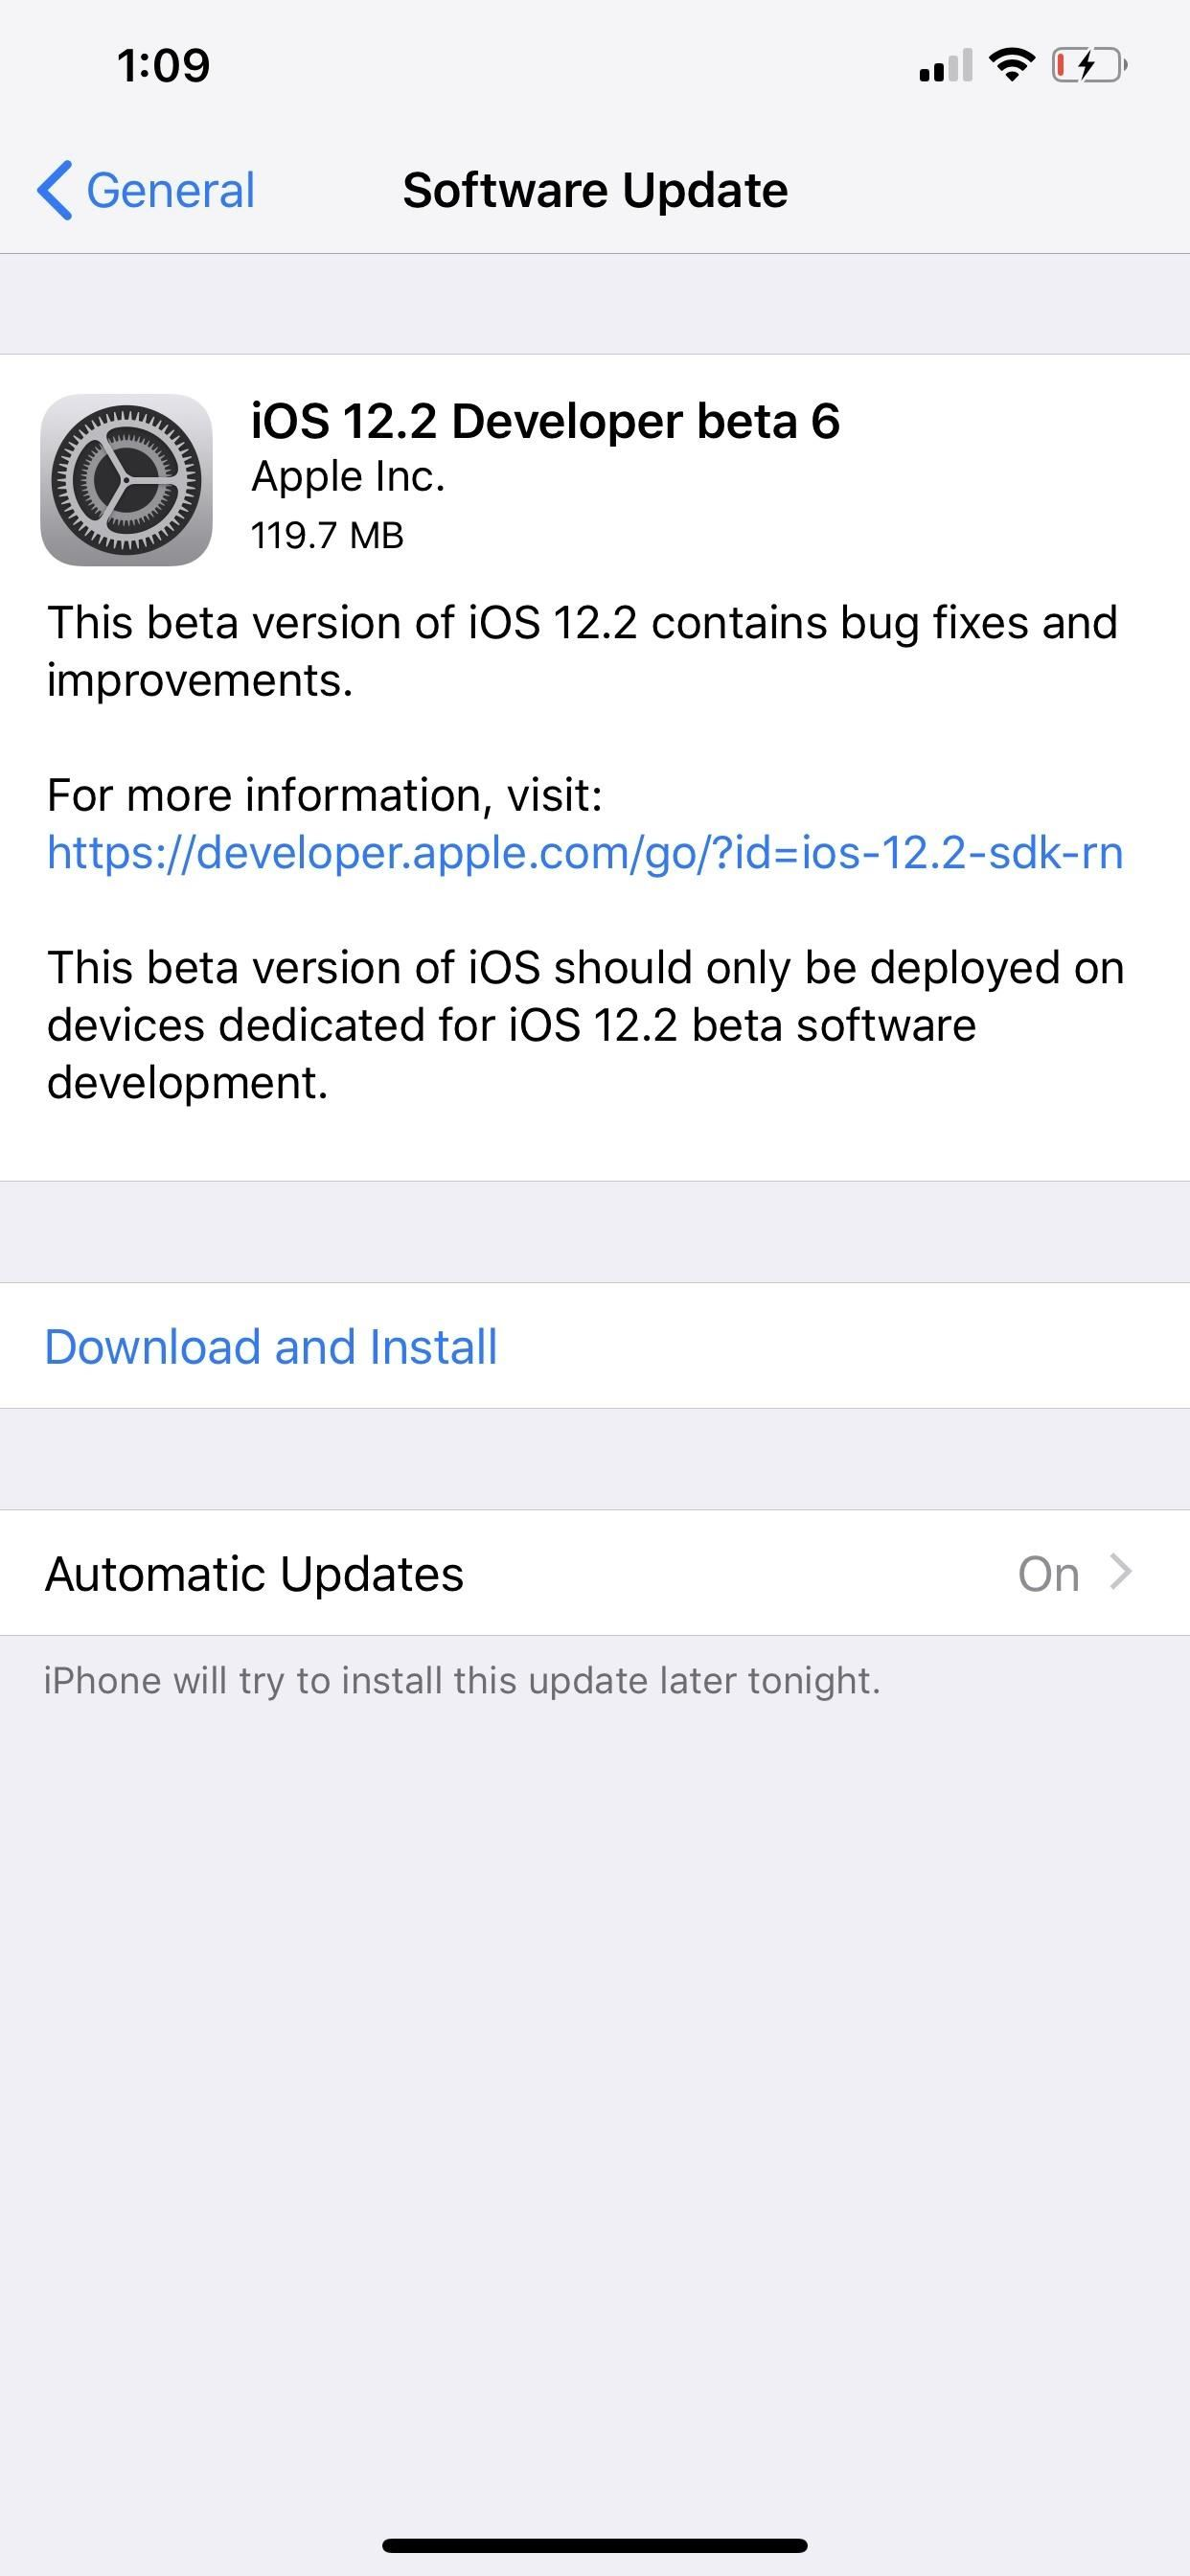 Apple has just released iOS 12.2 Beta 6 for iPhone for developers